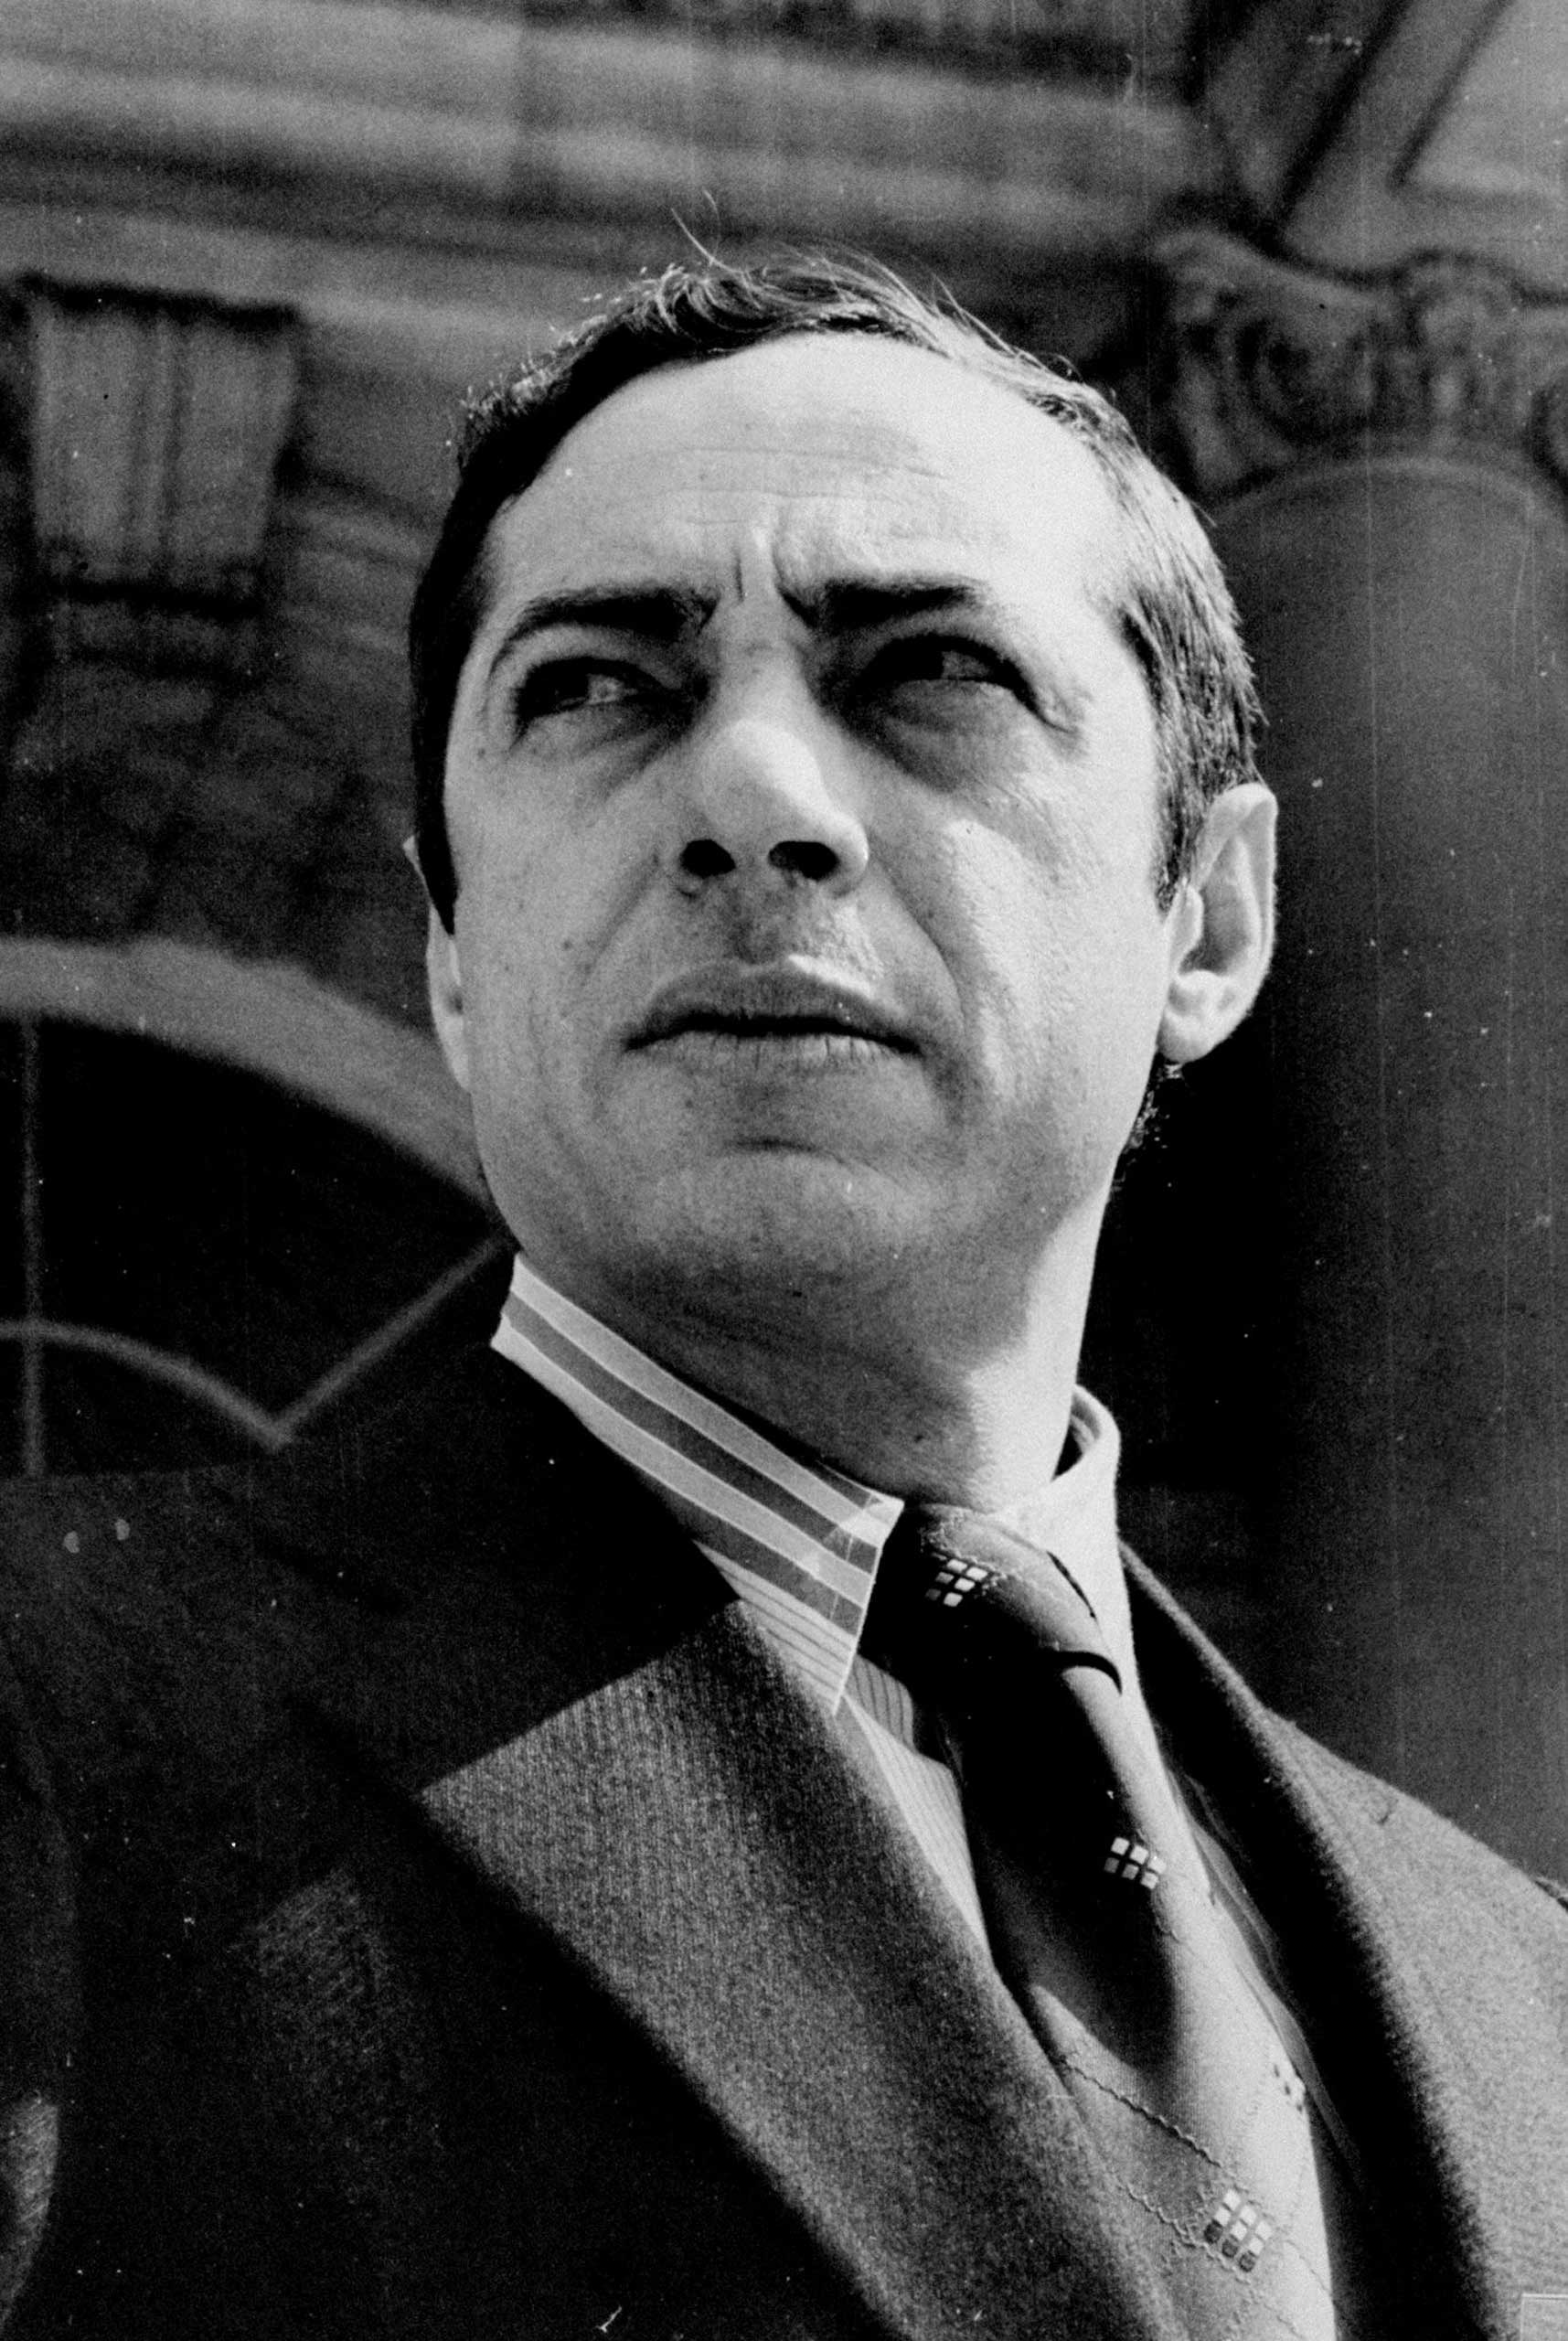 Mario Cuomo, Democratic candidate for Lt. Gov. of New York State, at City Hall in New York City on Aug. 30, 1974.